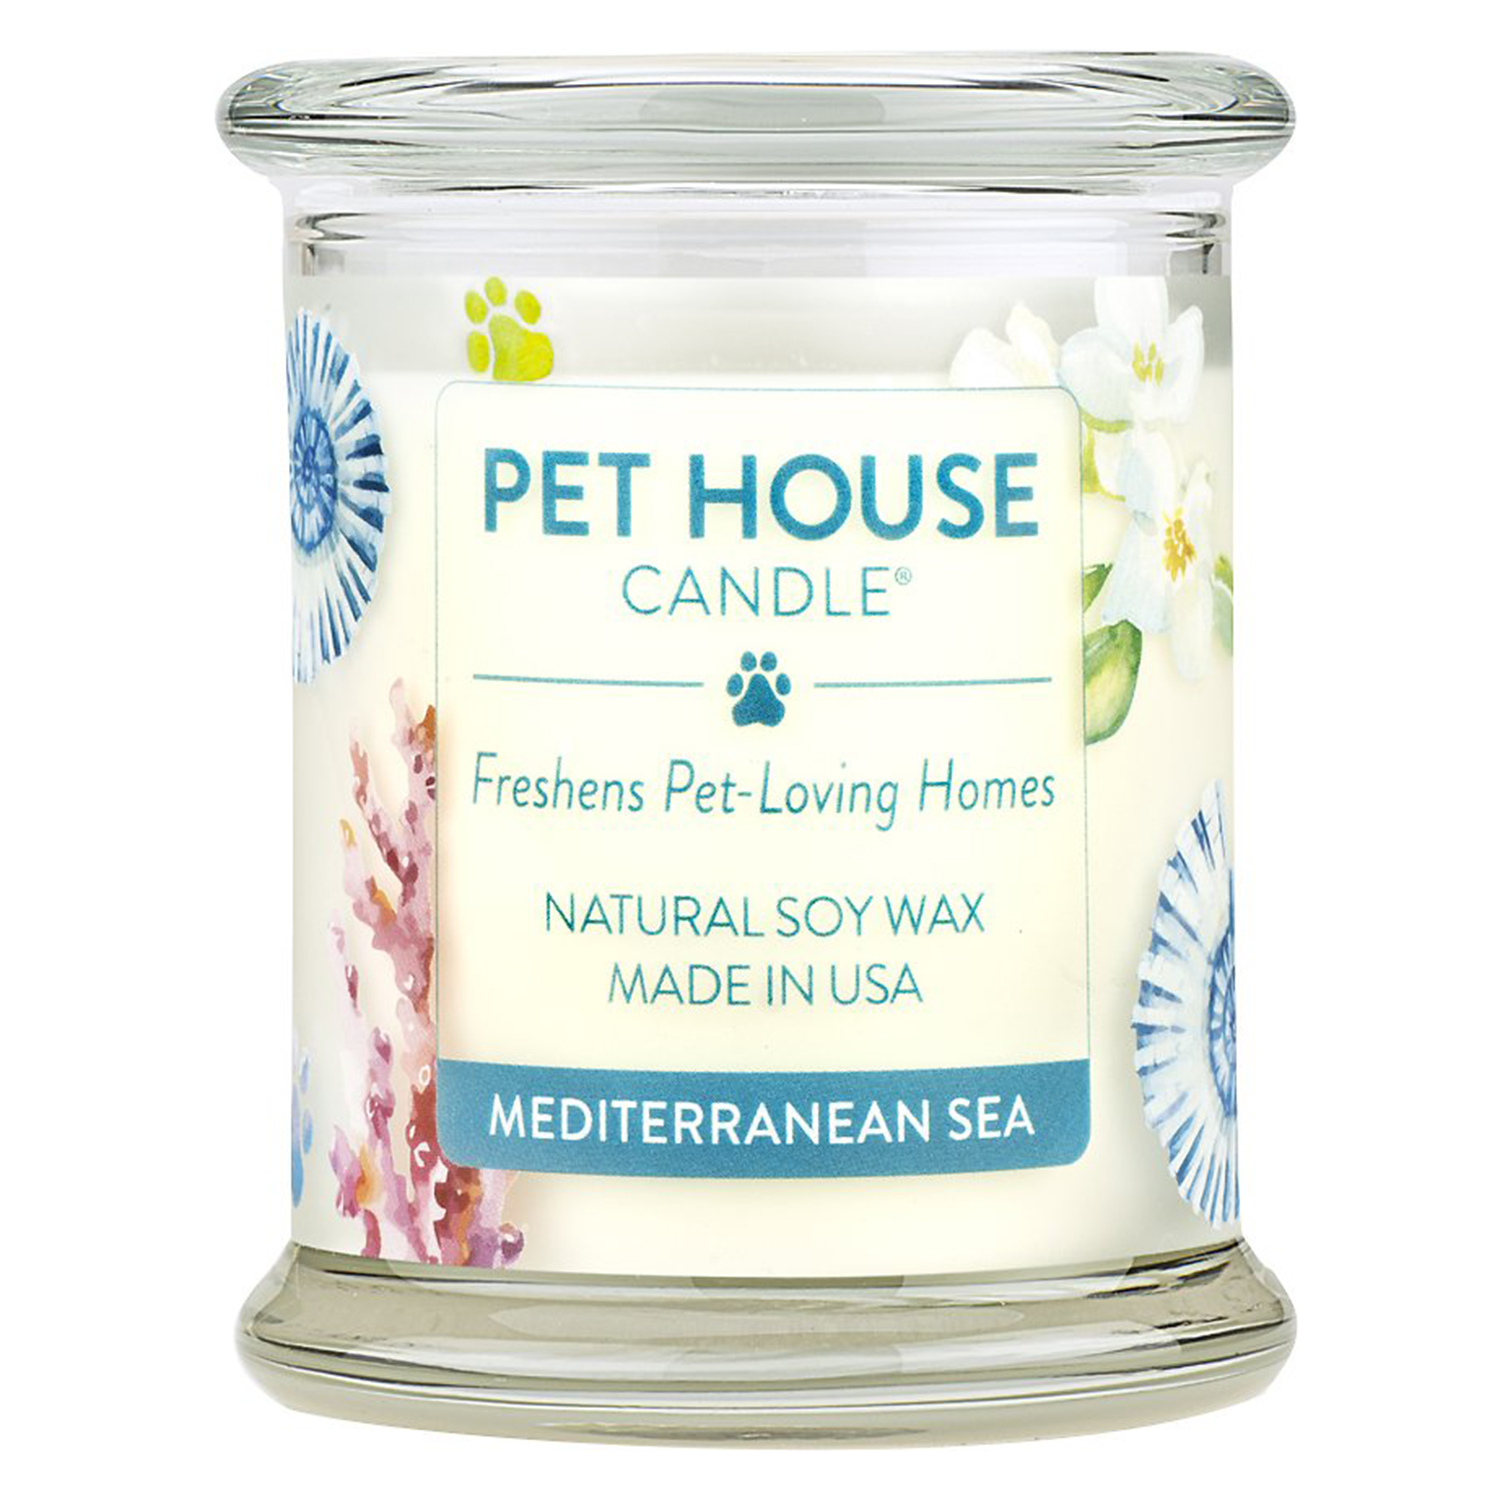 Pet House Mediterranean Sea Natural Soy Candle